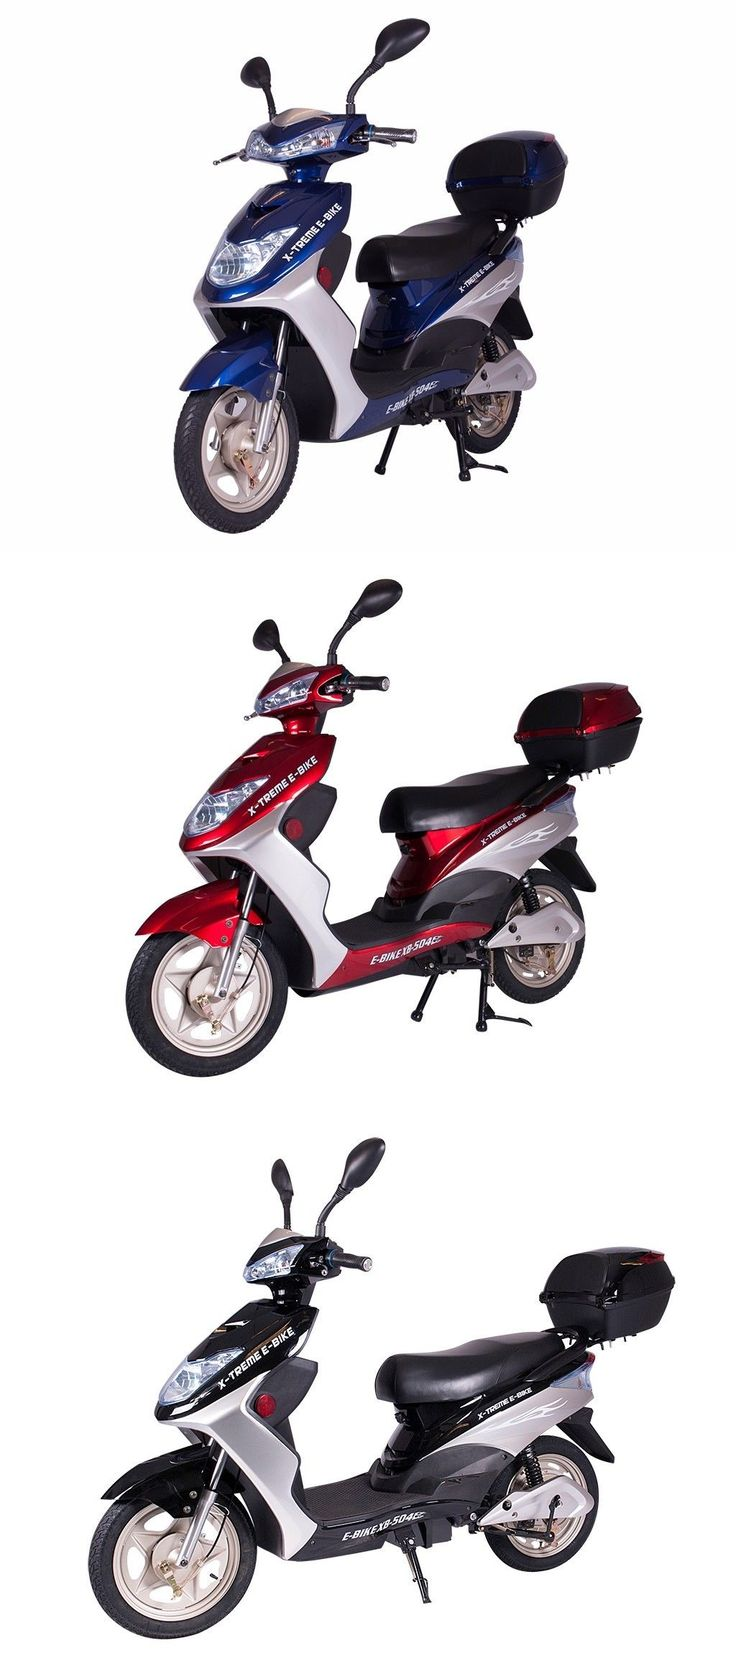 Electric scooters 47349 electric scooter moped 500 watts buy it now only